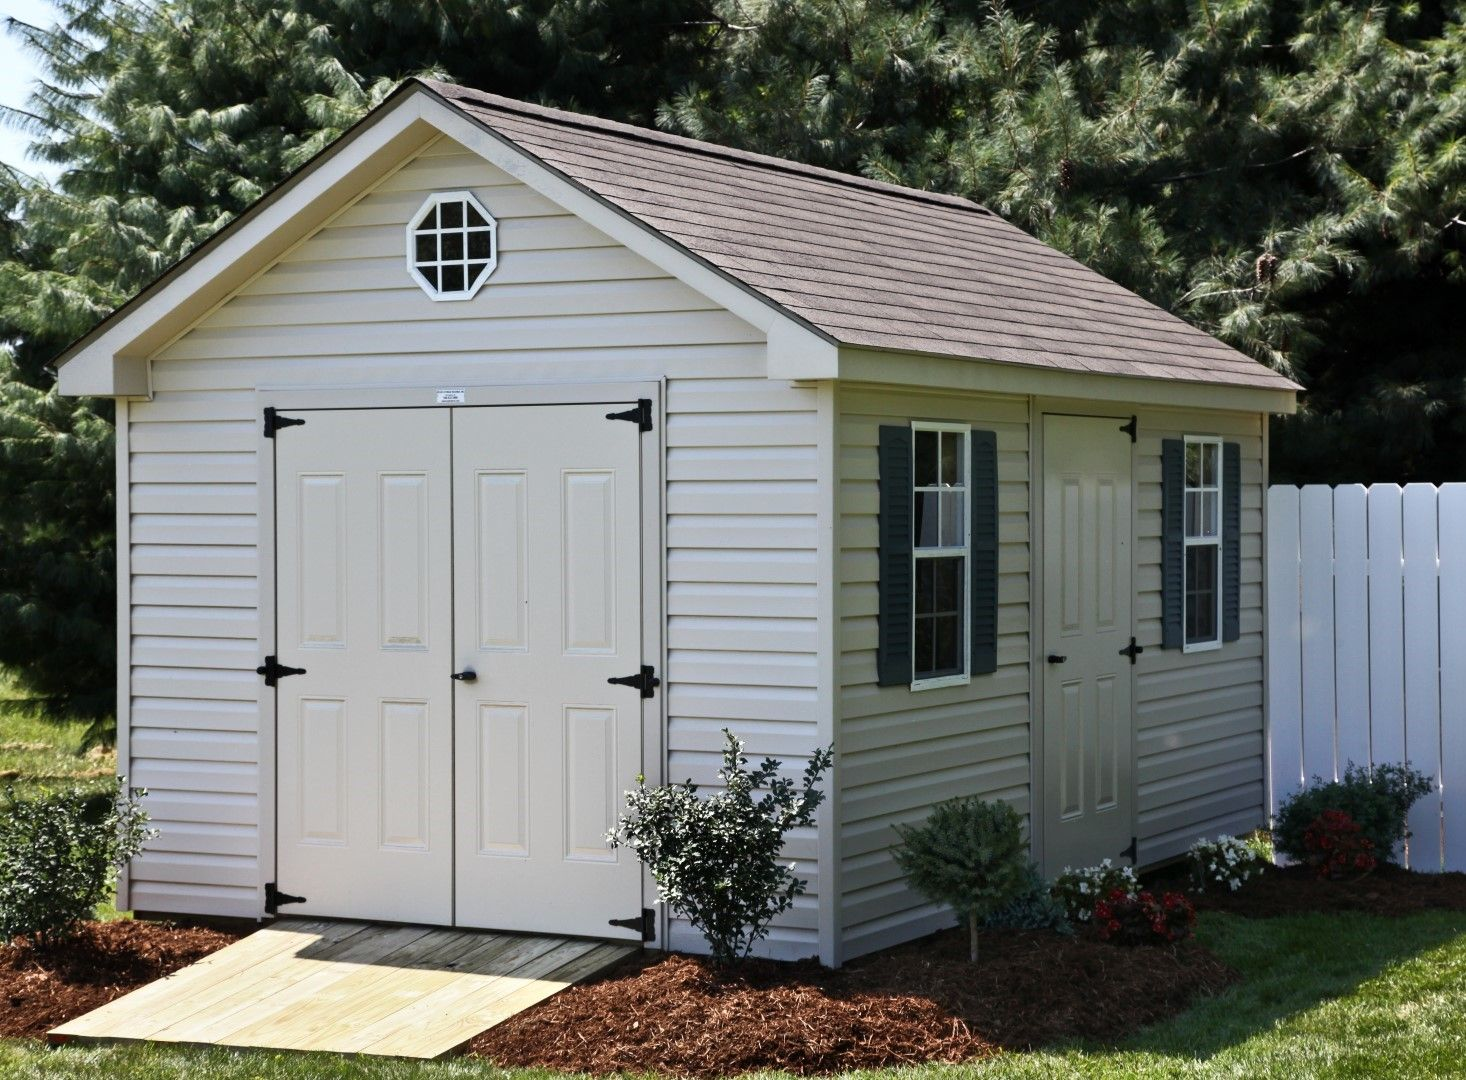 10x14 Vinyl Cottage Shingles 3 Doors Gable Roof Shed Shed Plans Diy Shed Plans Building A Shed